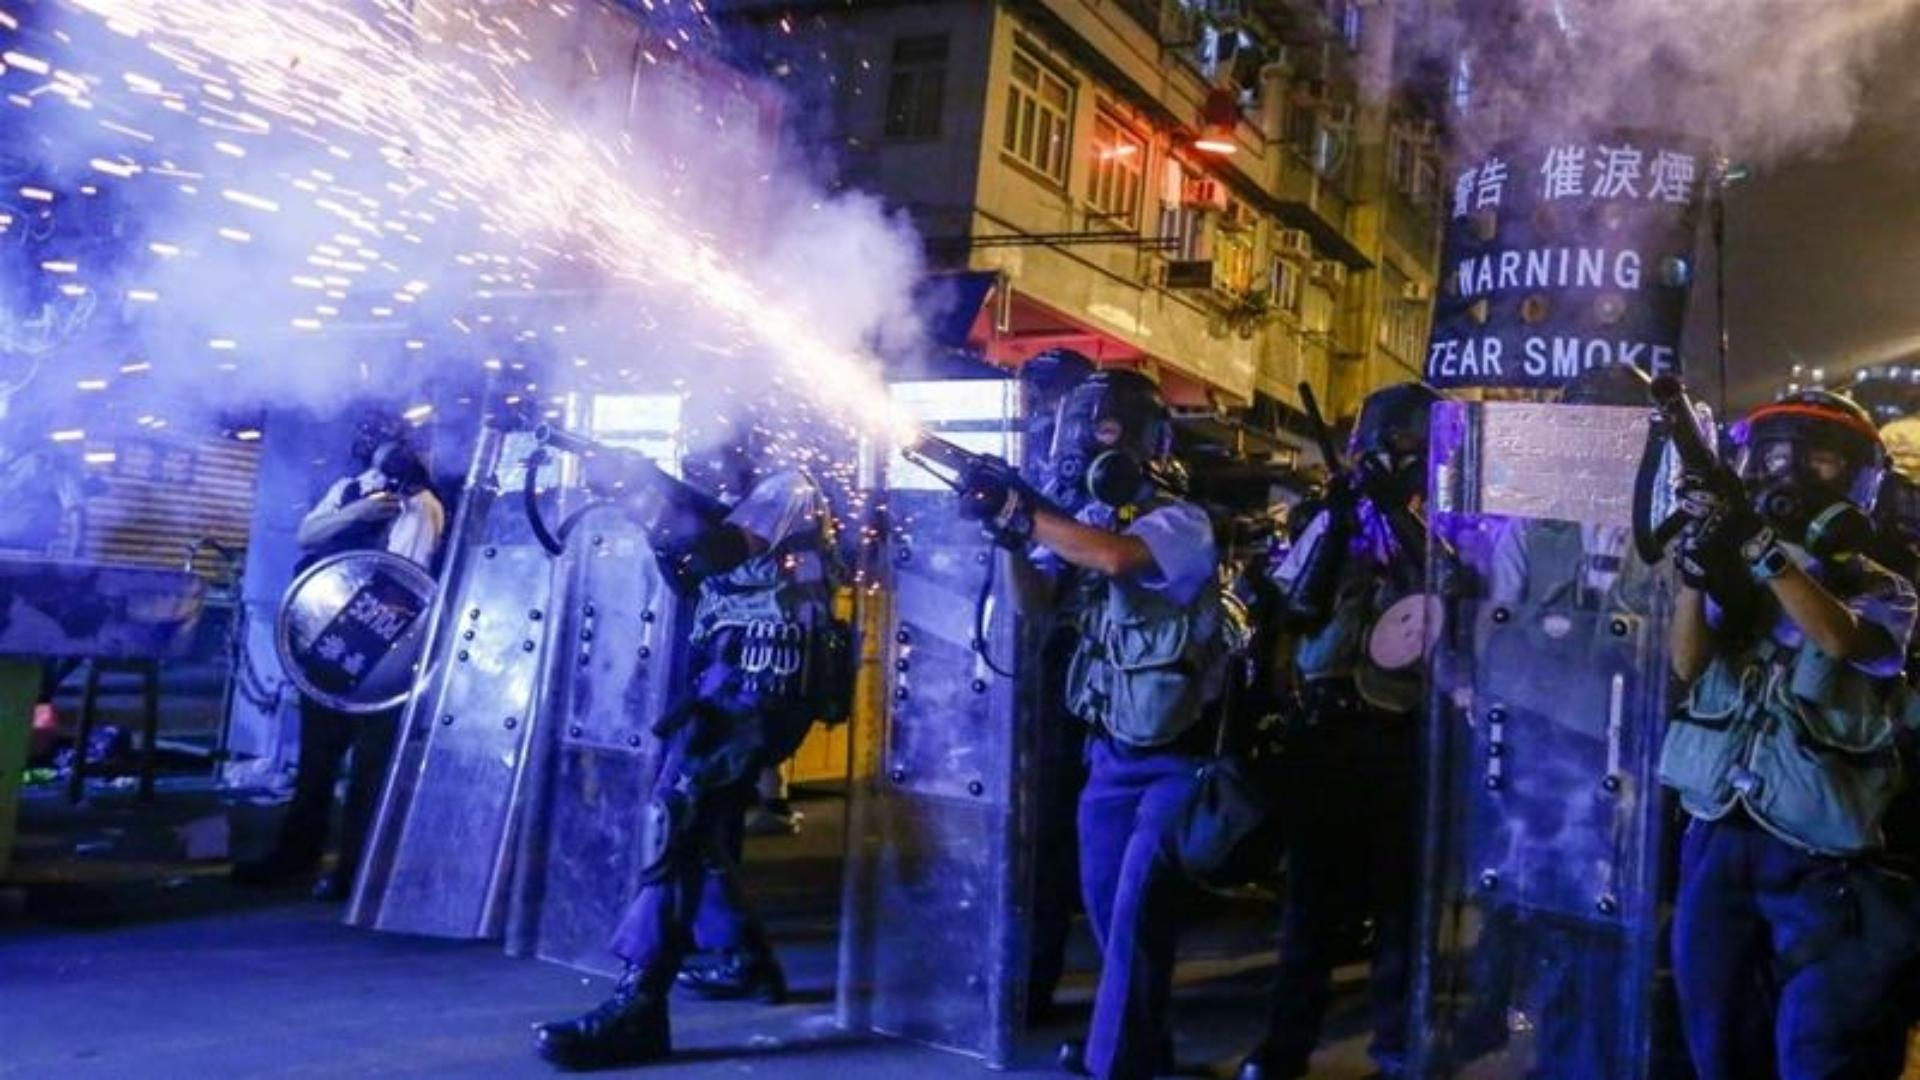 Beijing envoy takes on the Hong Kong protest movement